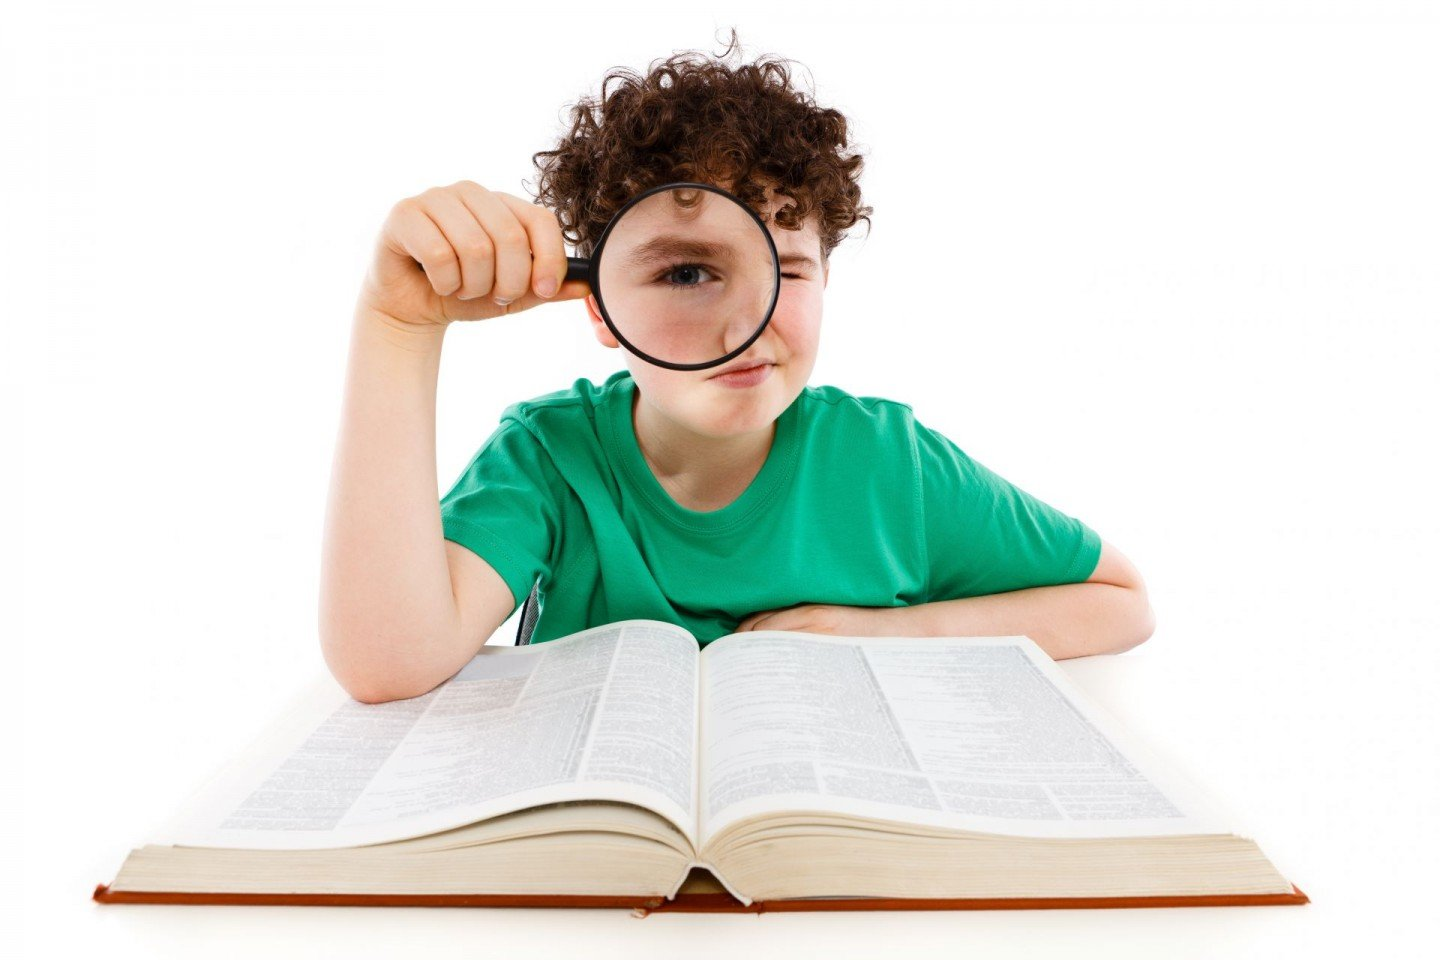 boy reading with magnifying glass